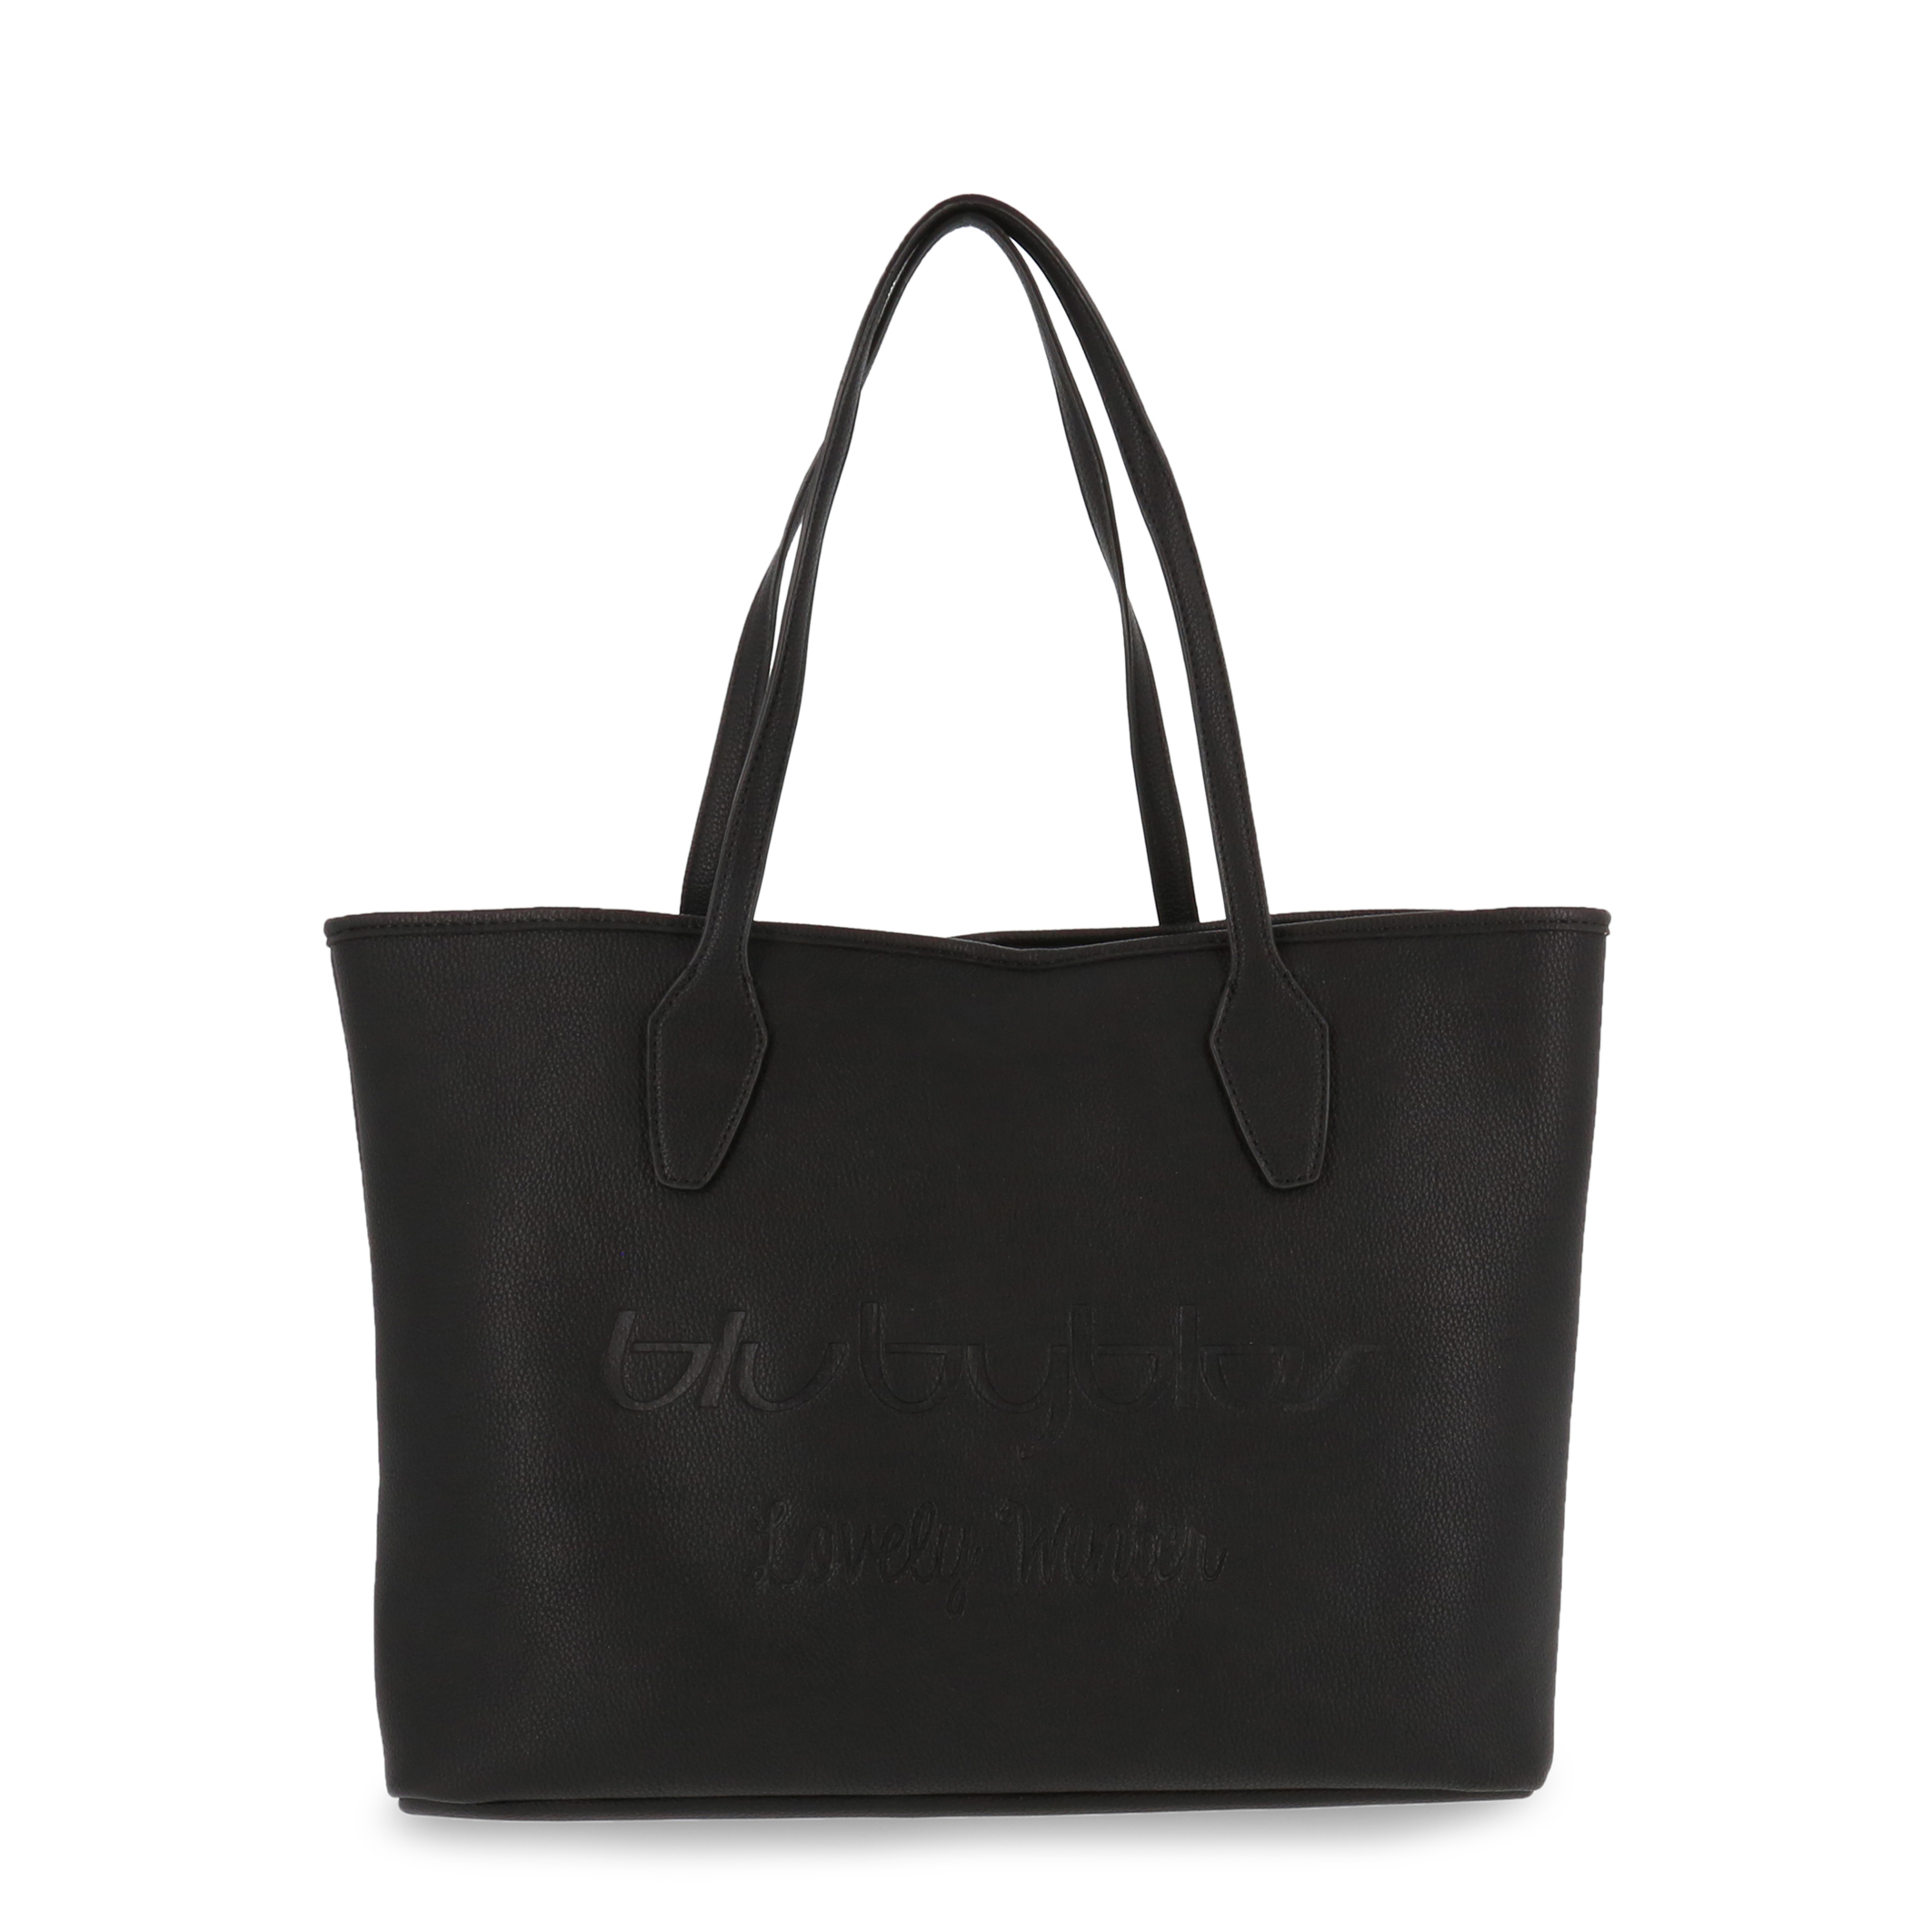 Shopping bag Blu Byblos LOVELYWINTER_685900 Donna Nero 95122